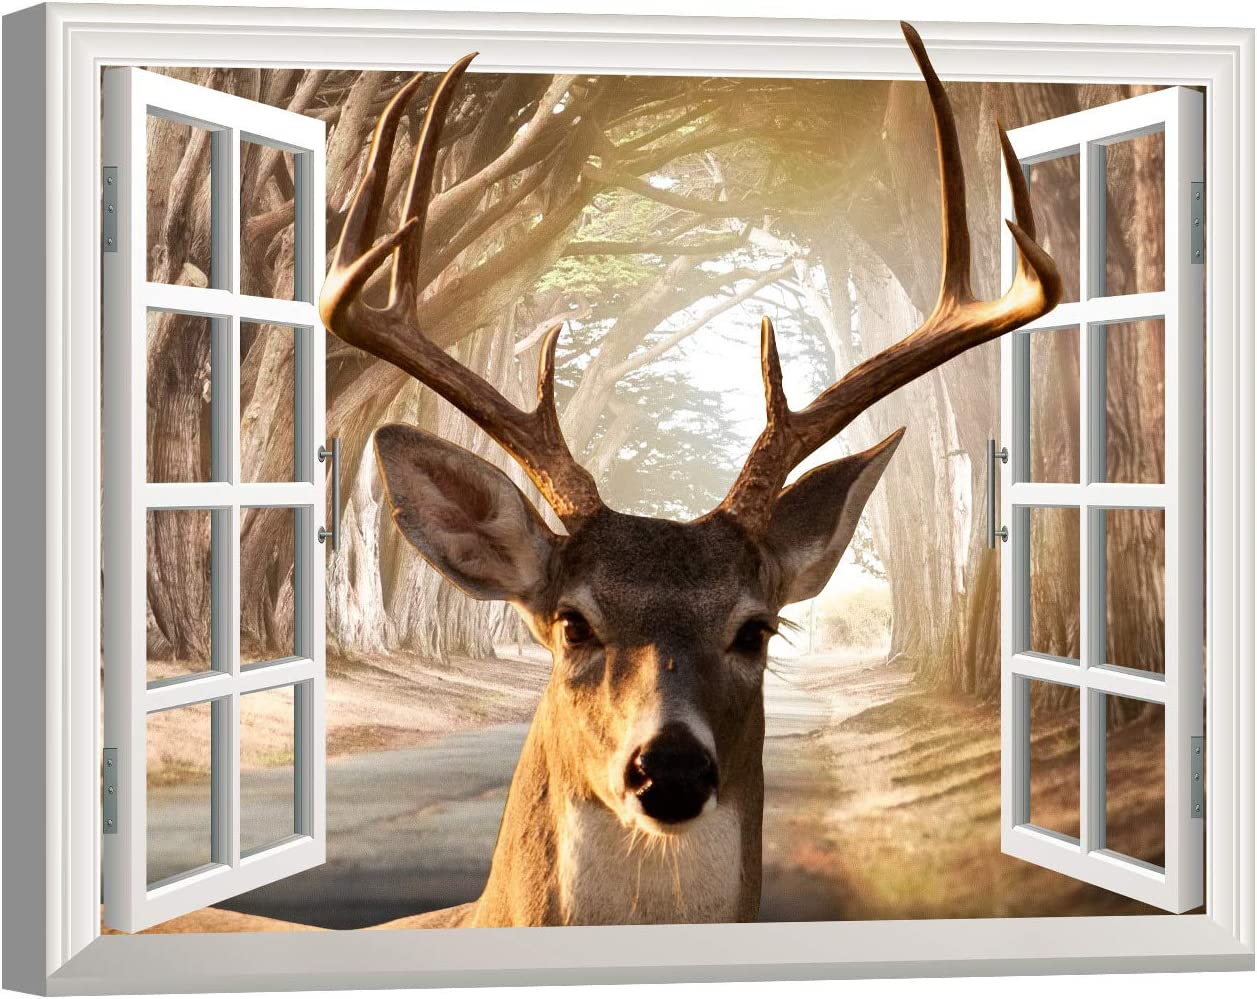 Deer Antler Decor for Living Room Wall Decoration 12x16inch With Frame Brown Deer Canvas Wall Art Home Wall Clearance Bathroom Window View Forest Woodland Landscape Wall Picture Wildlife Hunting Artwork